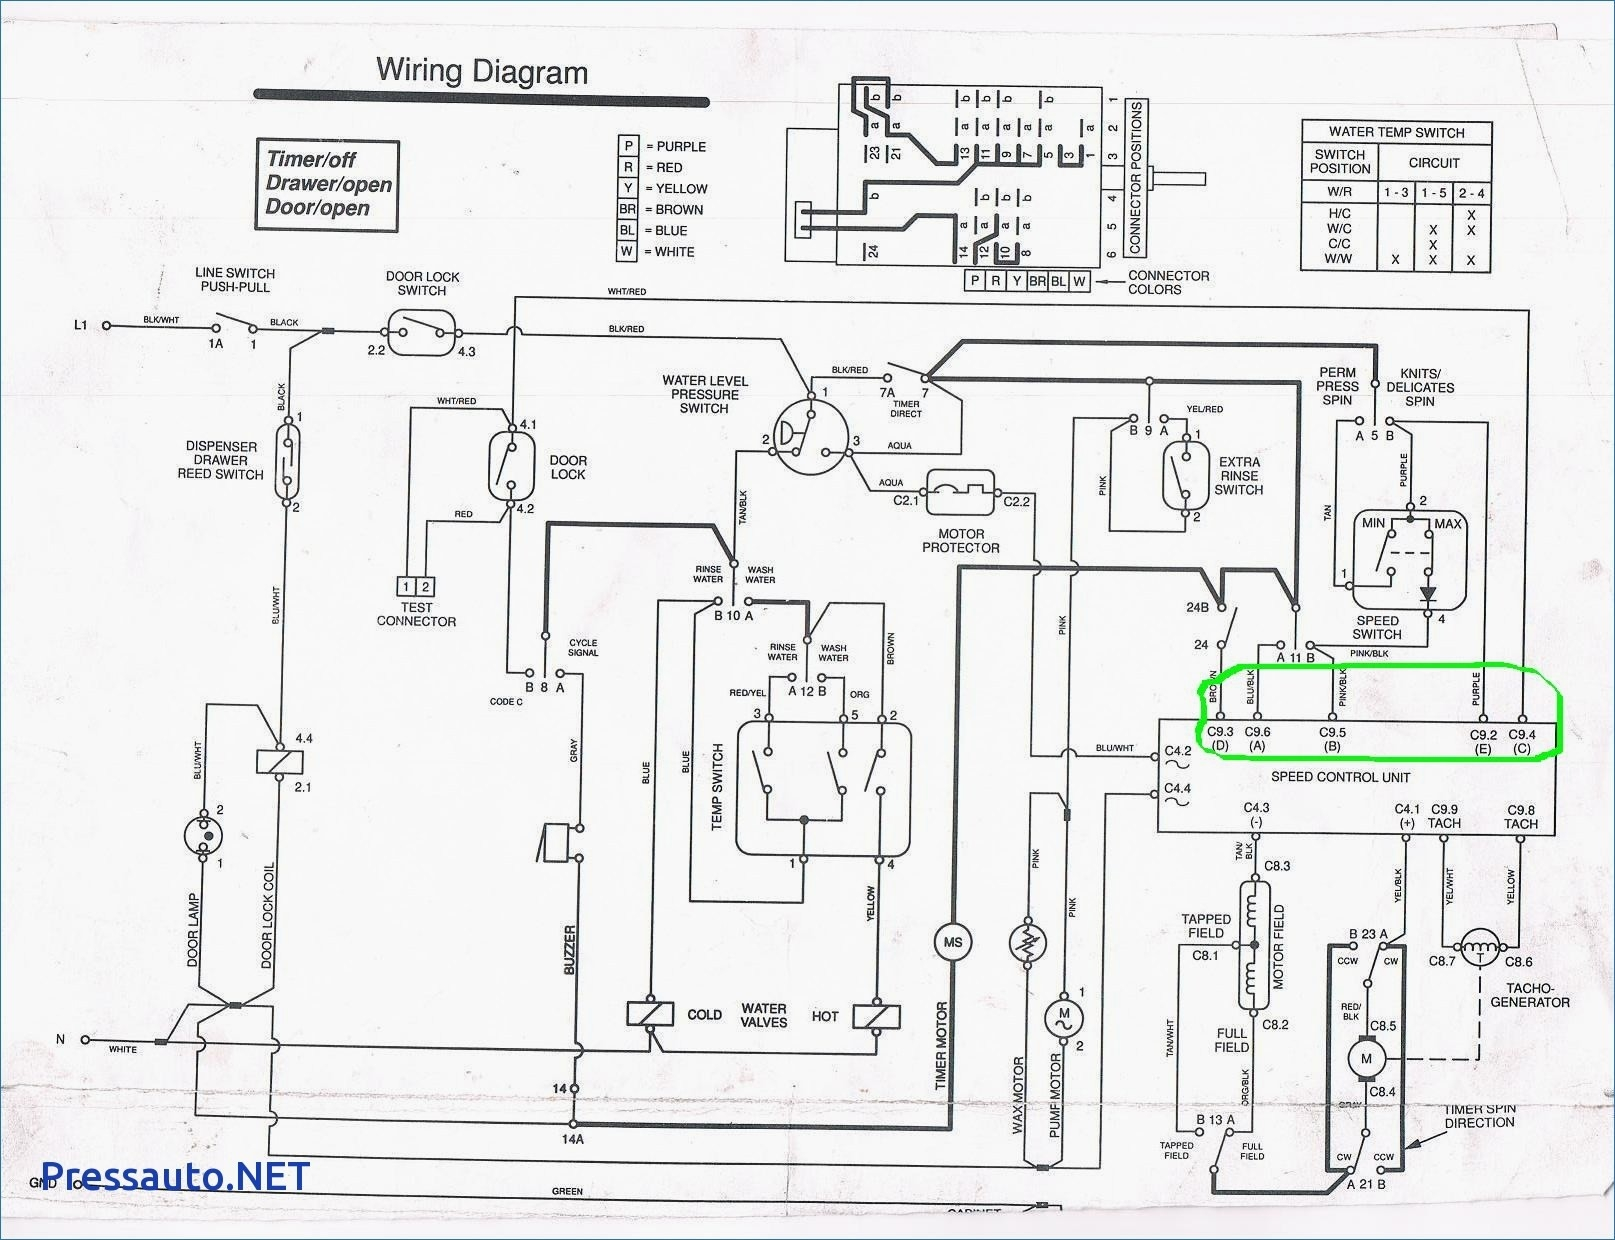 Machine Schematics